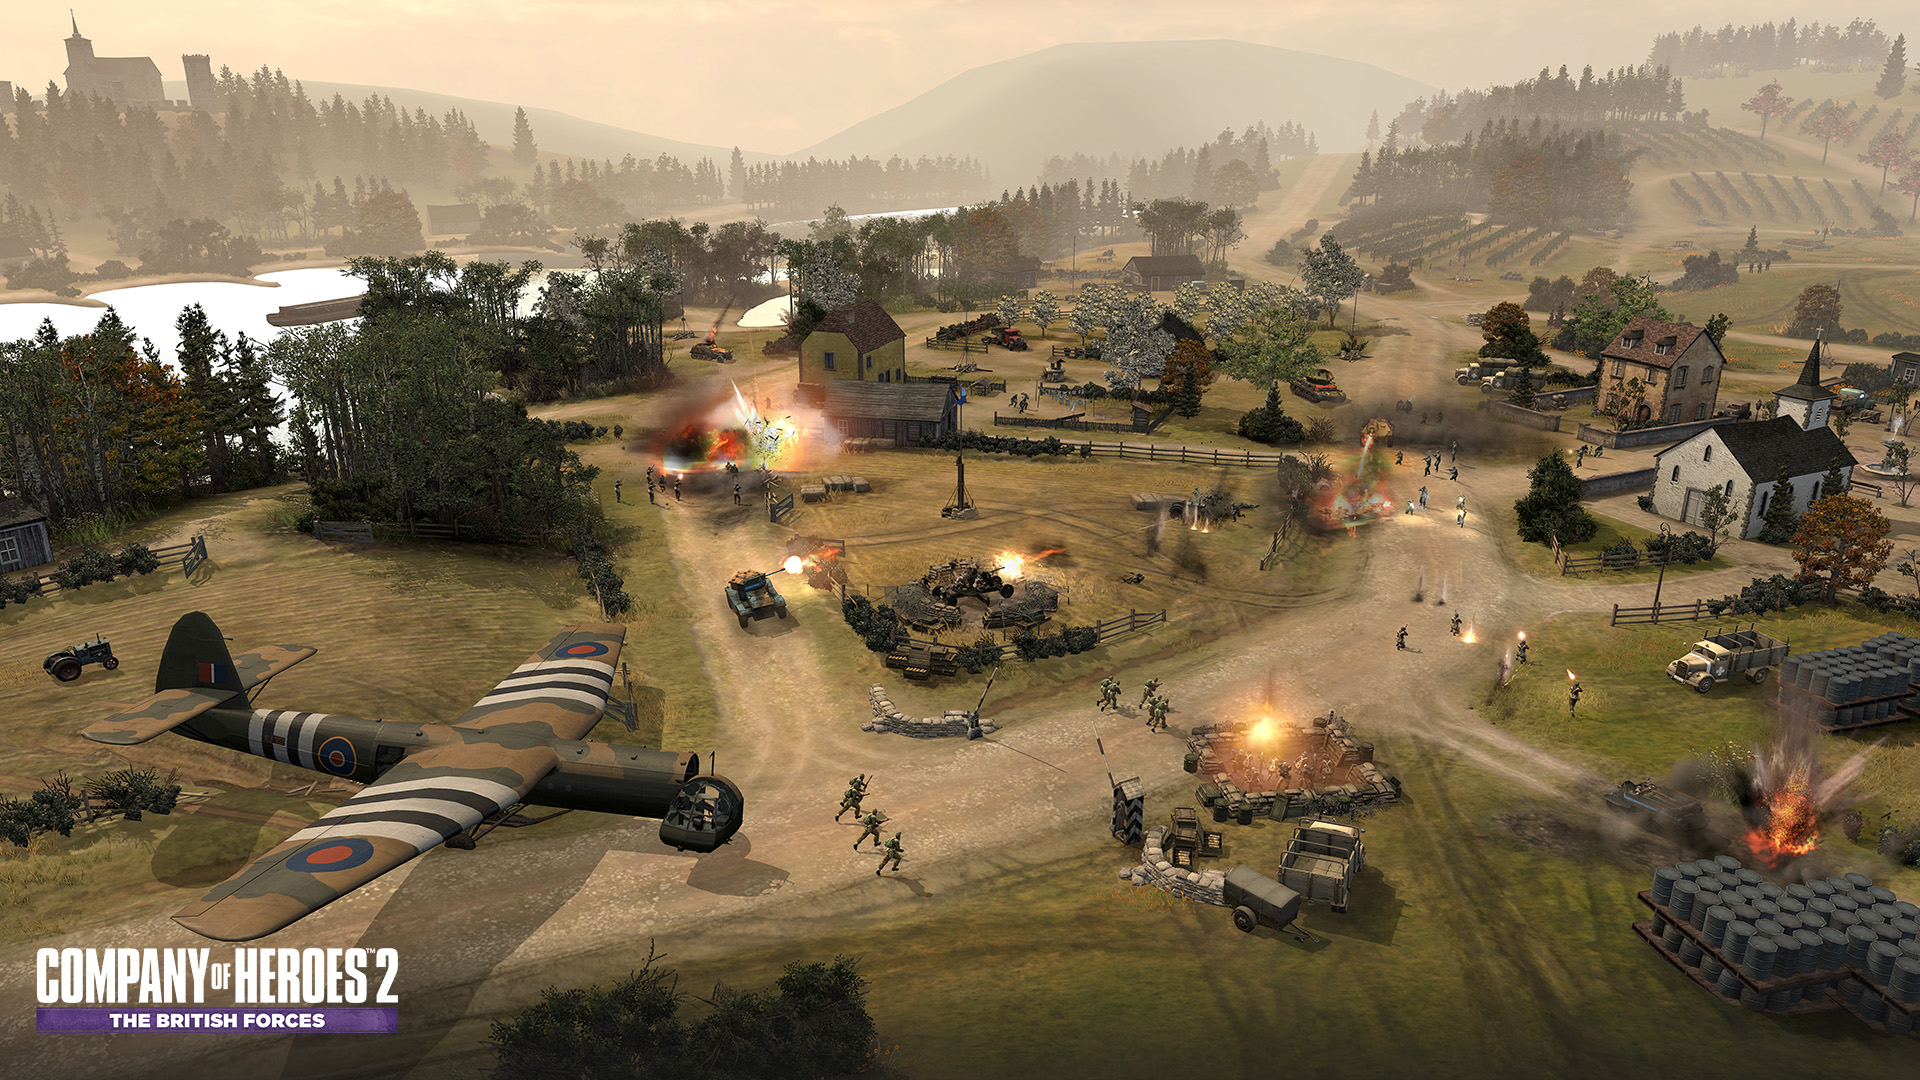 Company of Heroes 2 The British Forces 011115 c